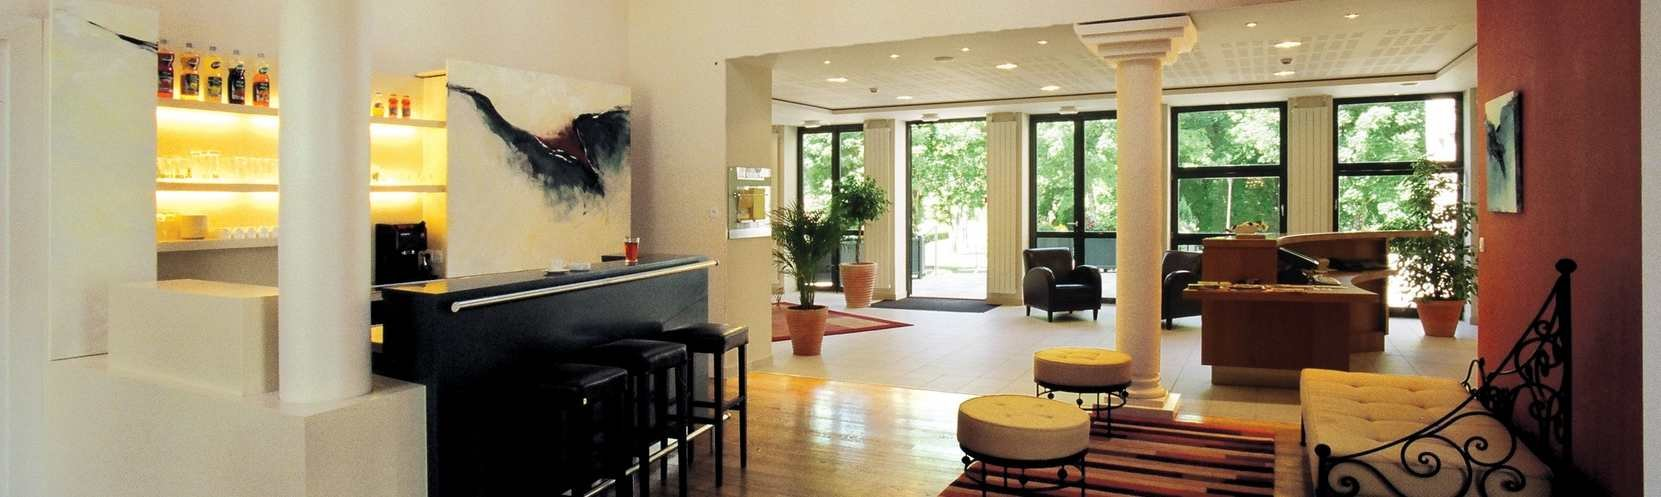 cerise-luxeuil-les-sources-hotel-residence-reception-hall-2.jpg